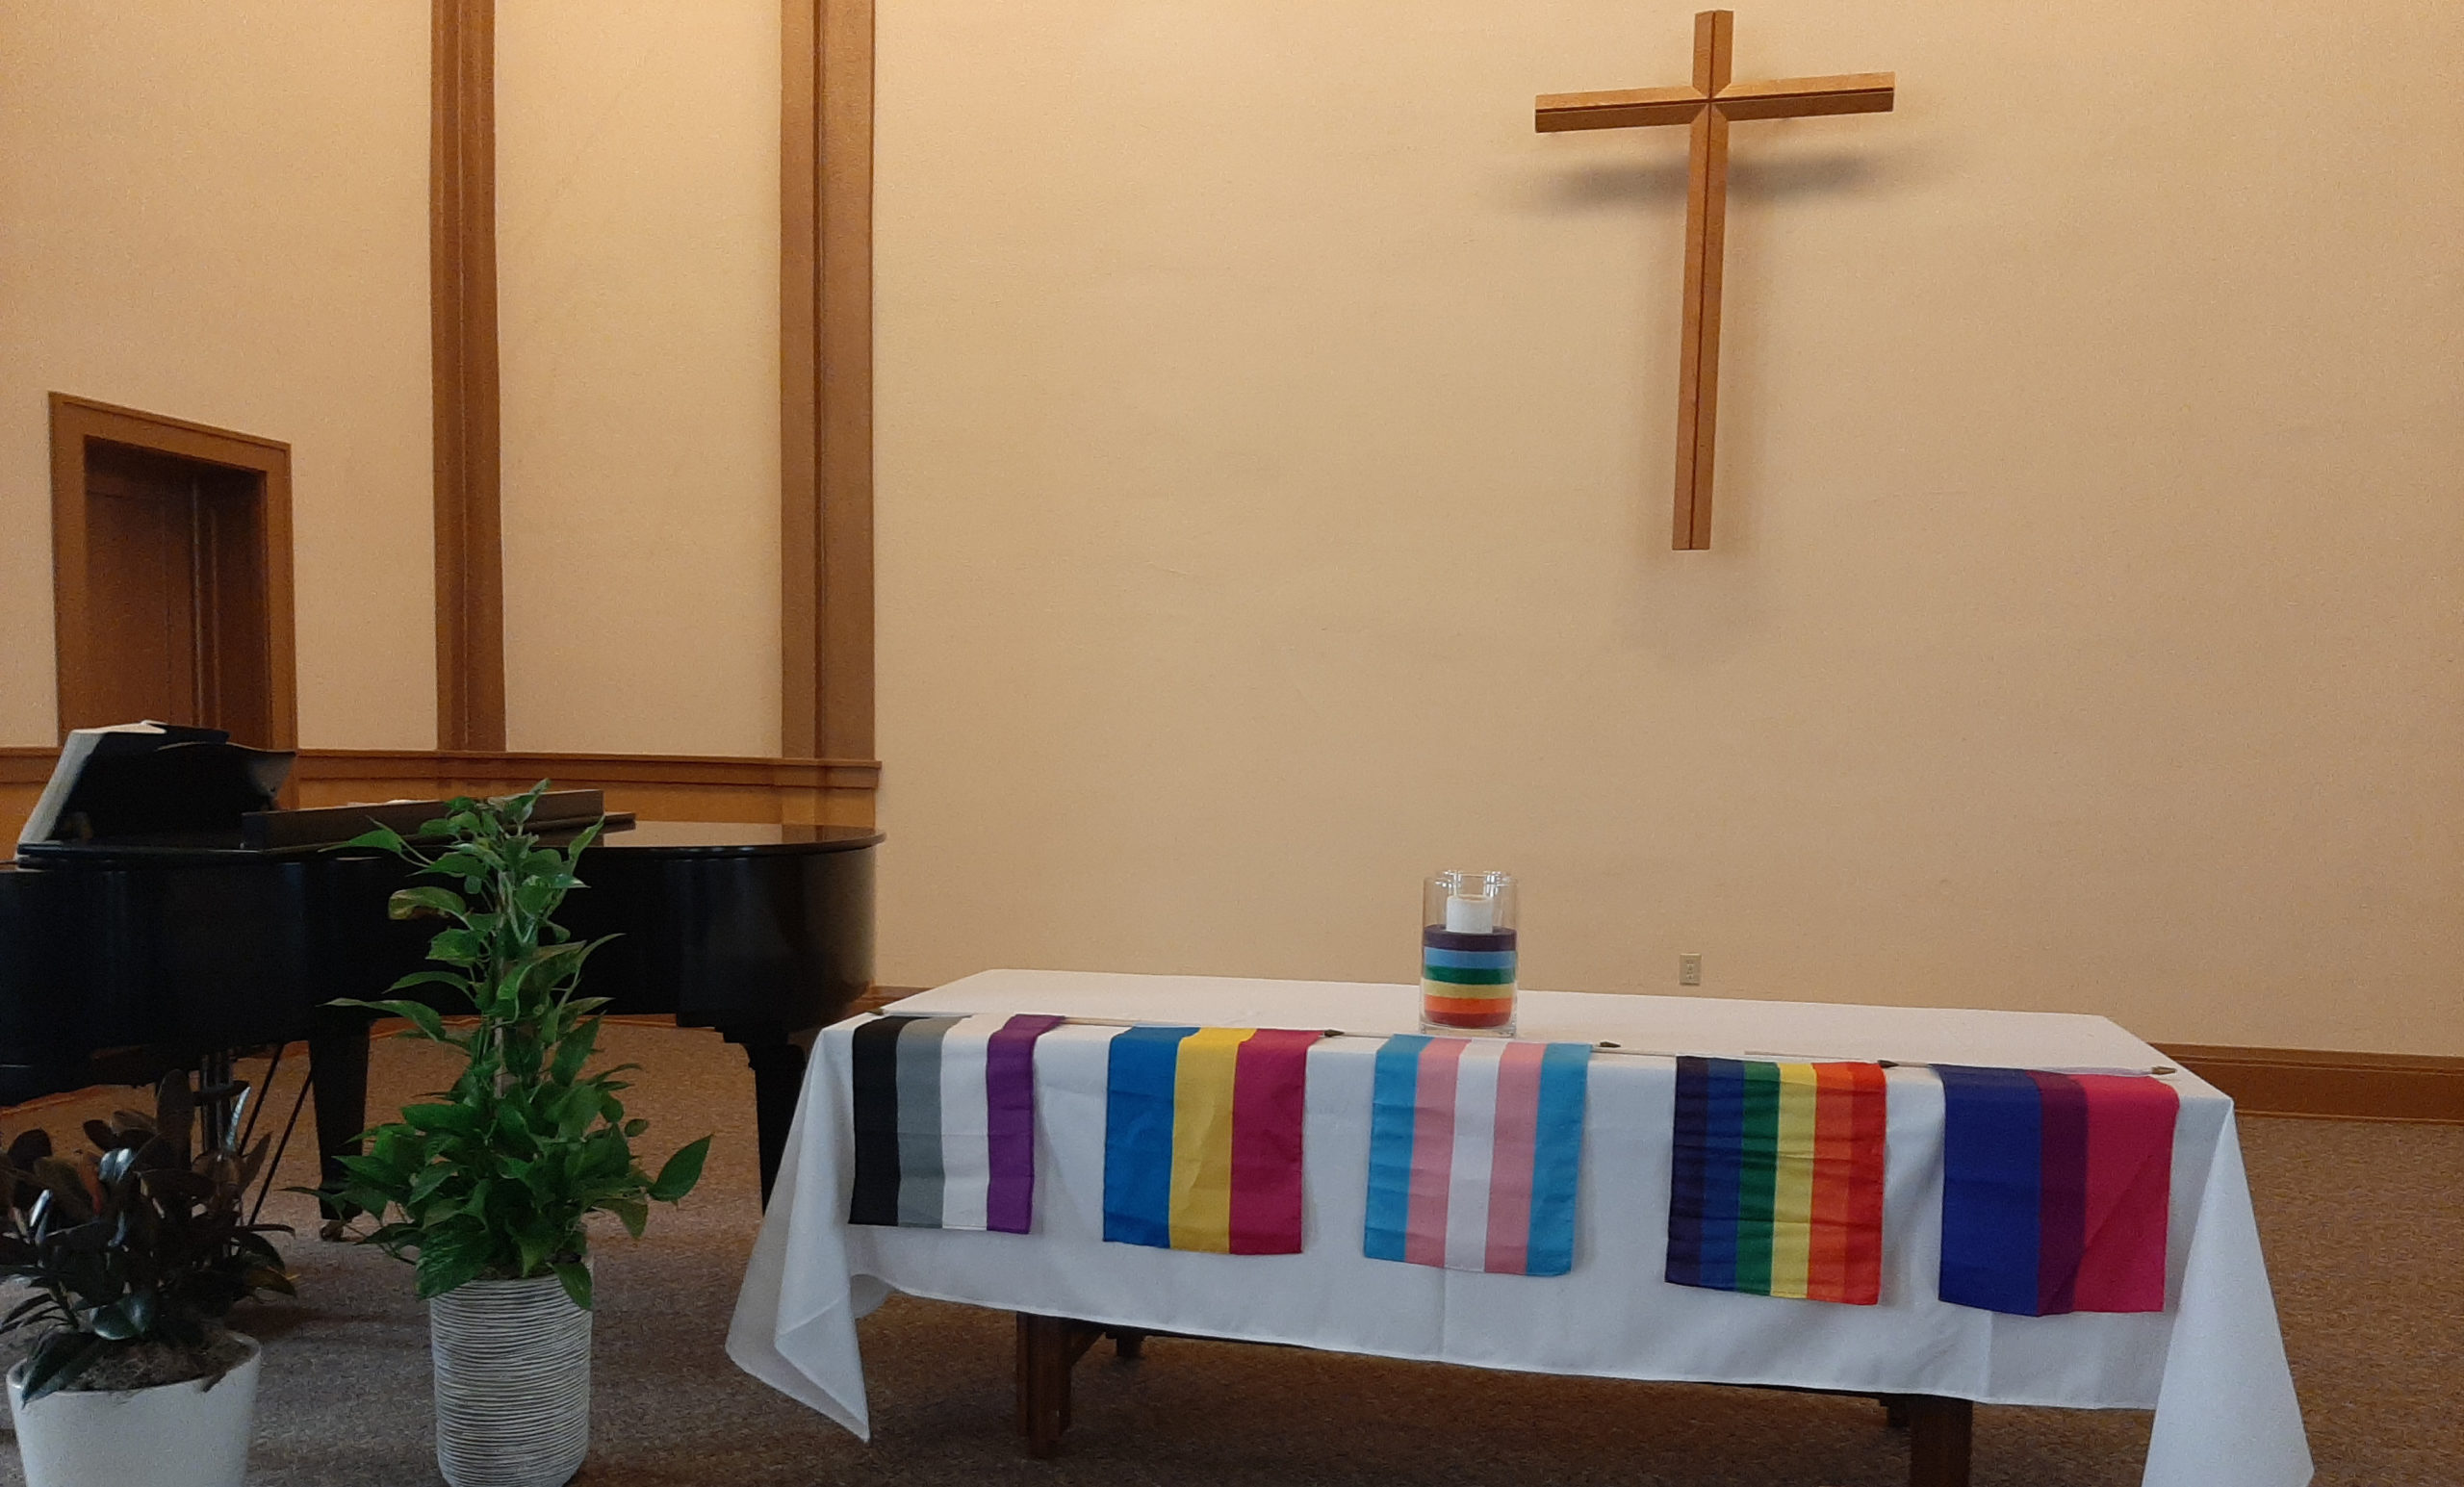 Various pride flags are displayed in the sanctuary of Faith Mennonite Church.